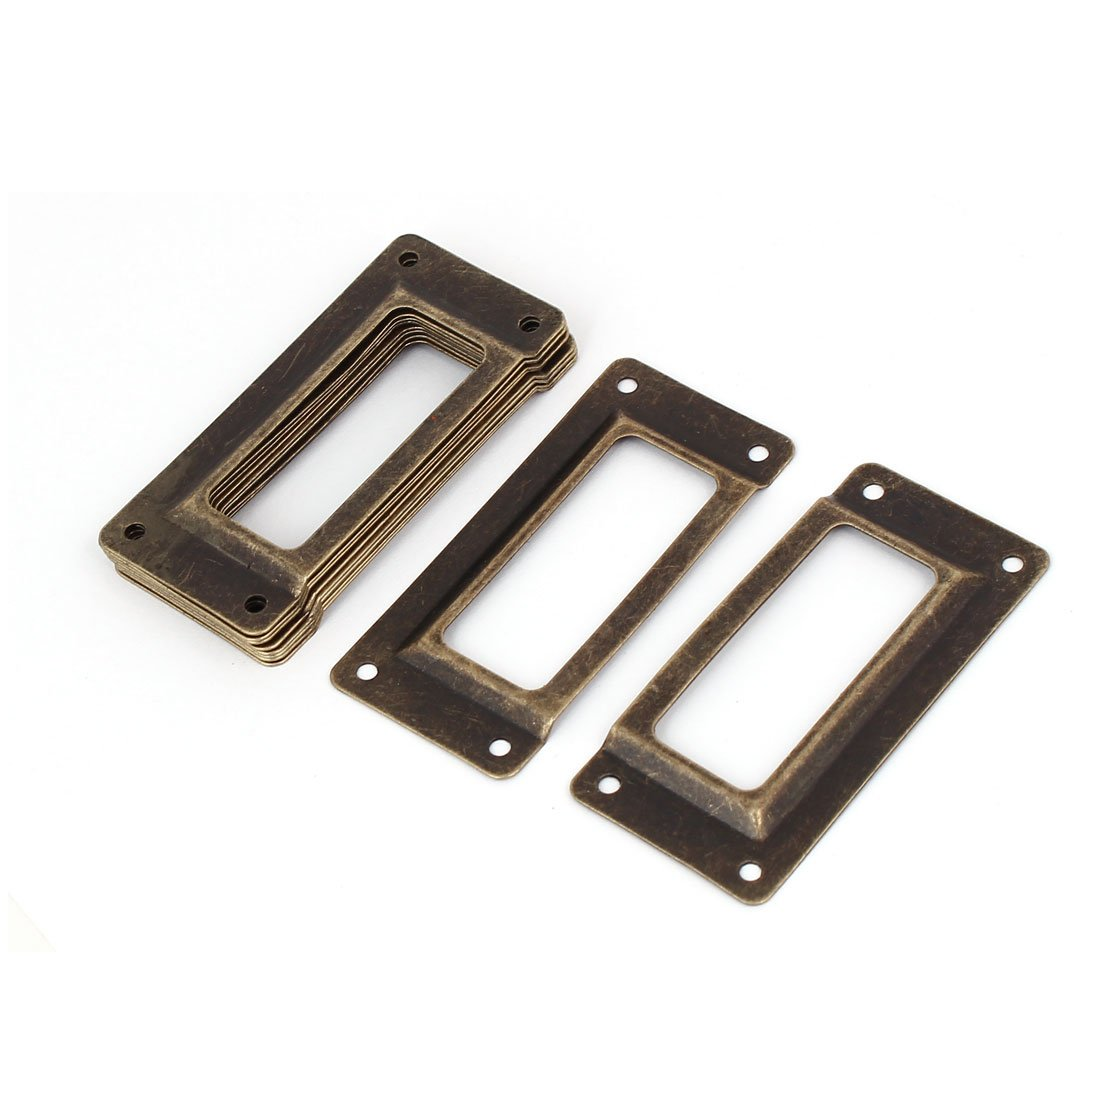 uxcellOffice Library File Drawer 62mm x 28mm Iron Tag Label Holder Name Card Frame 10pcs a16061400ux0794